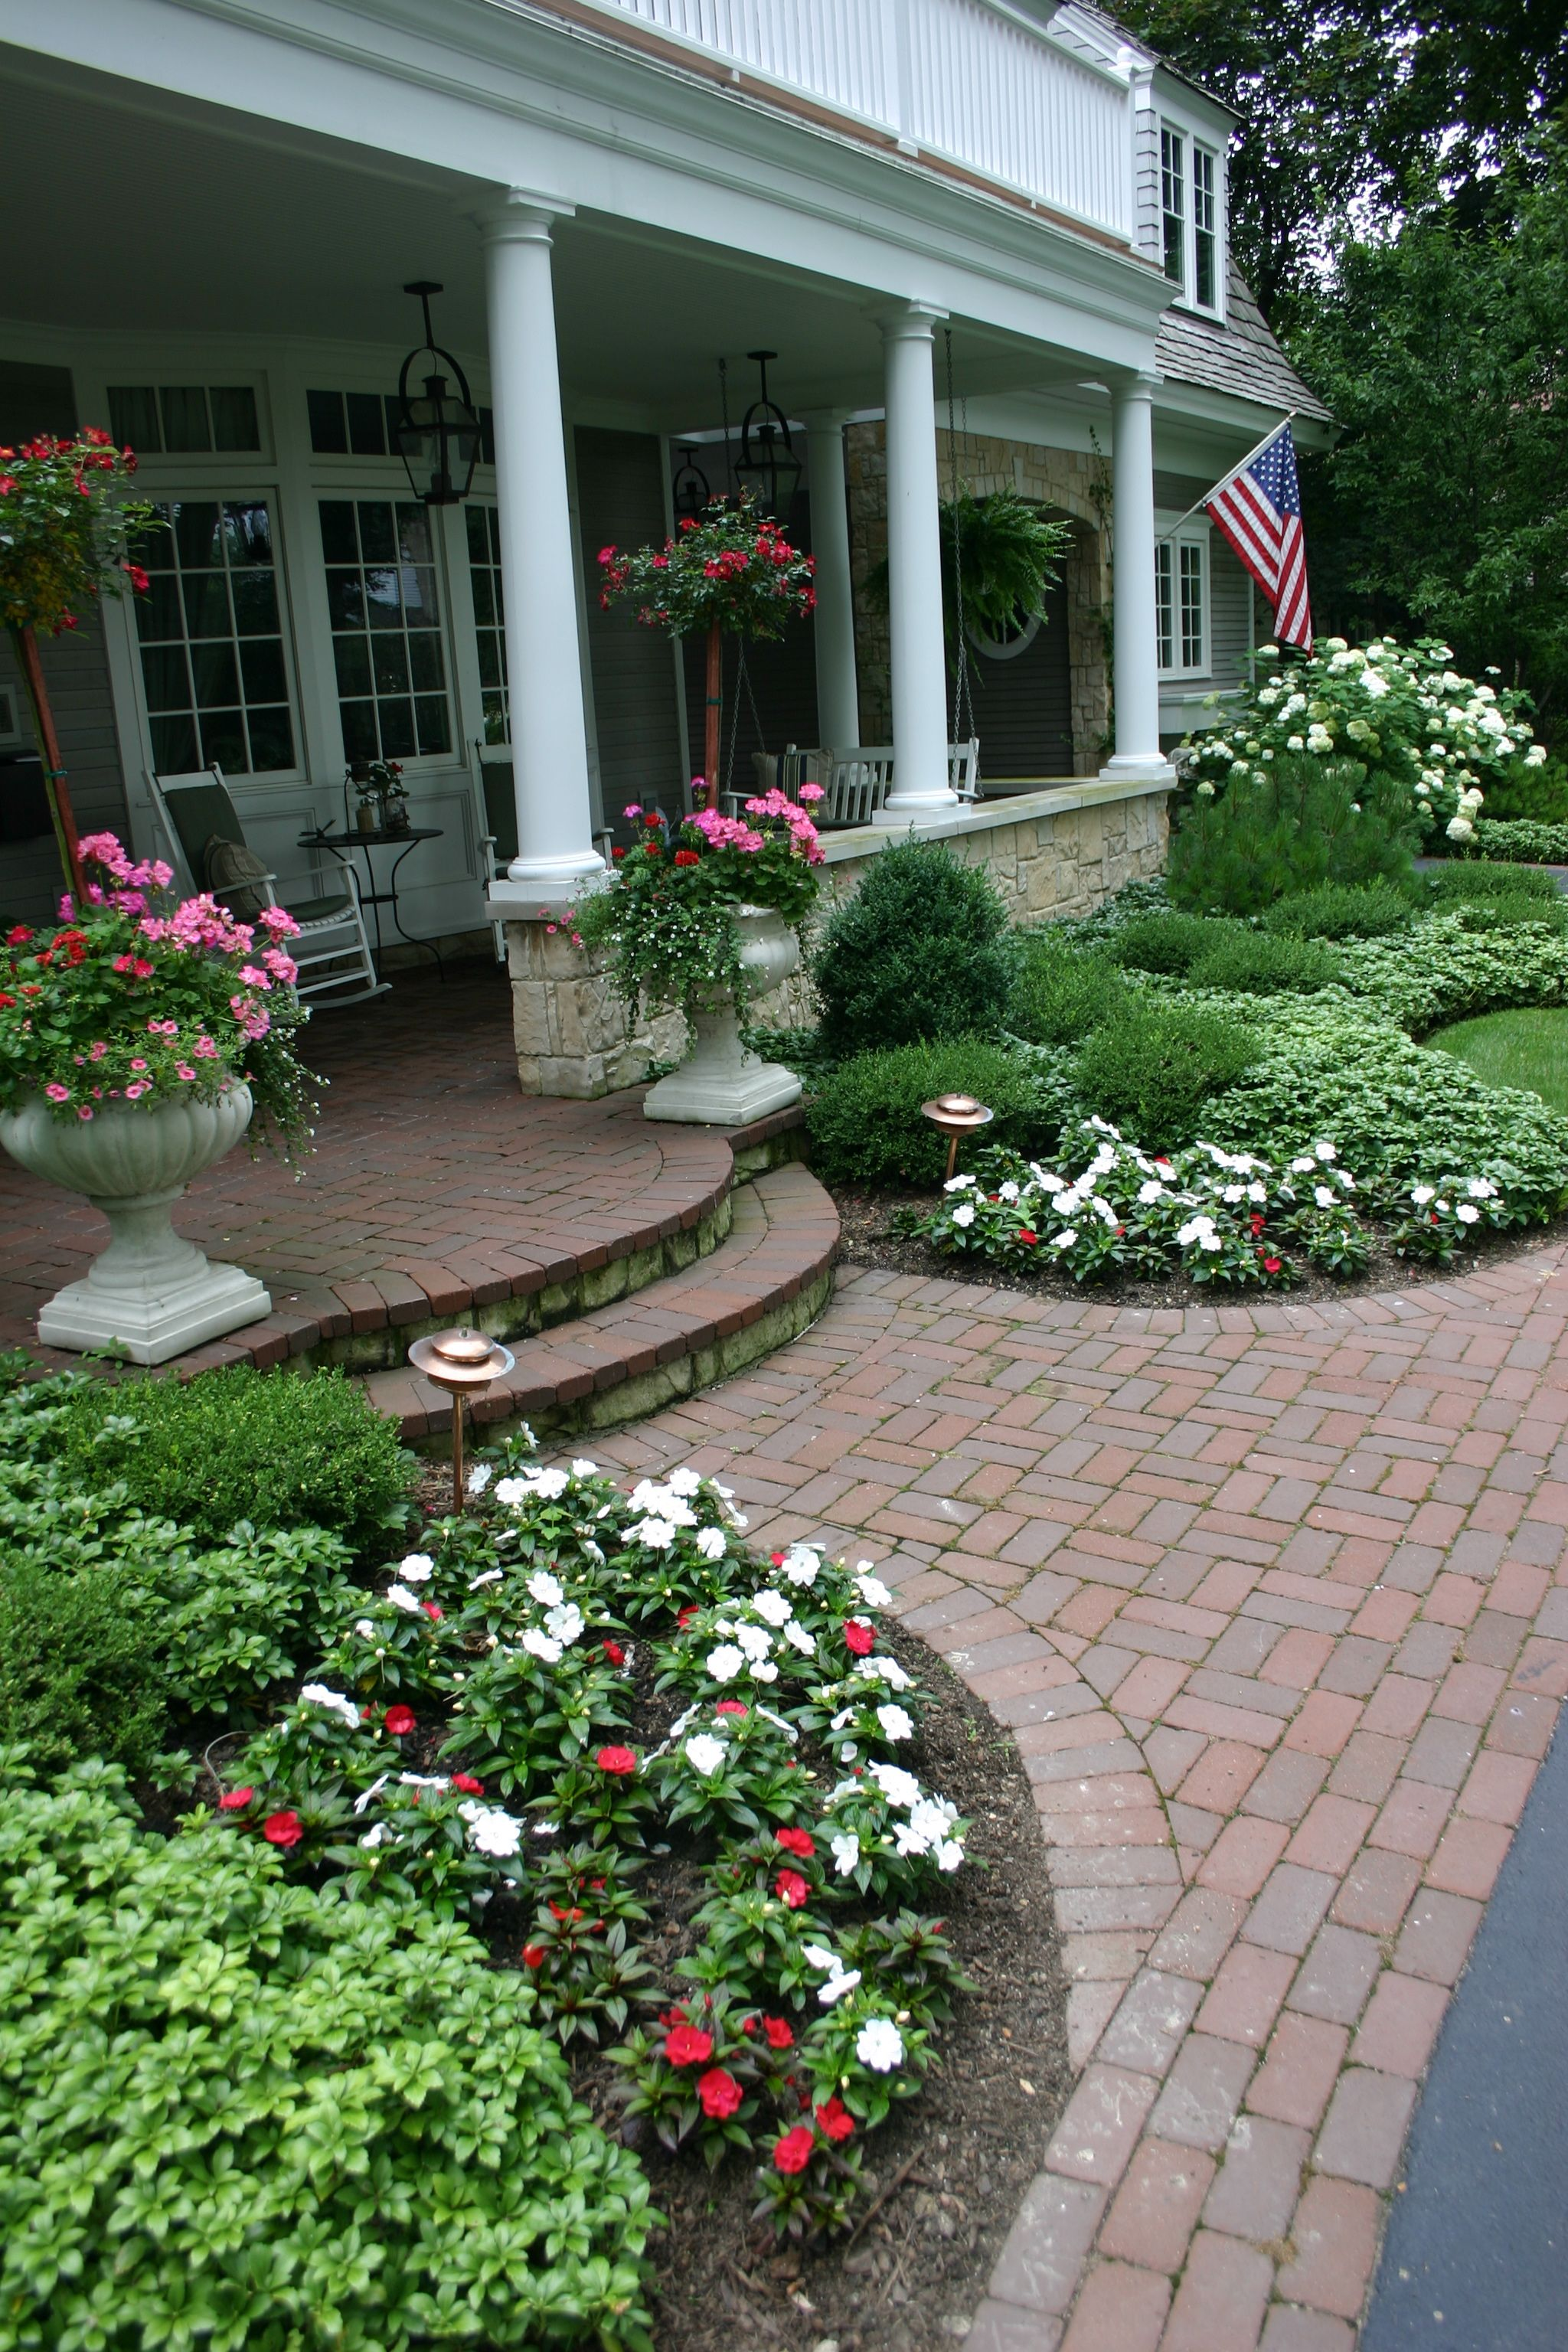 Pin On Jardines Landscaping ideas for house with front porch